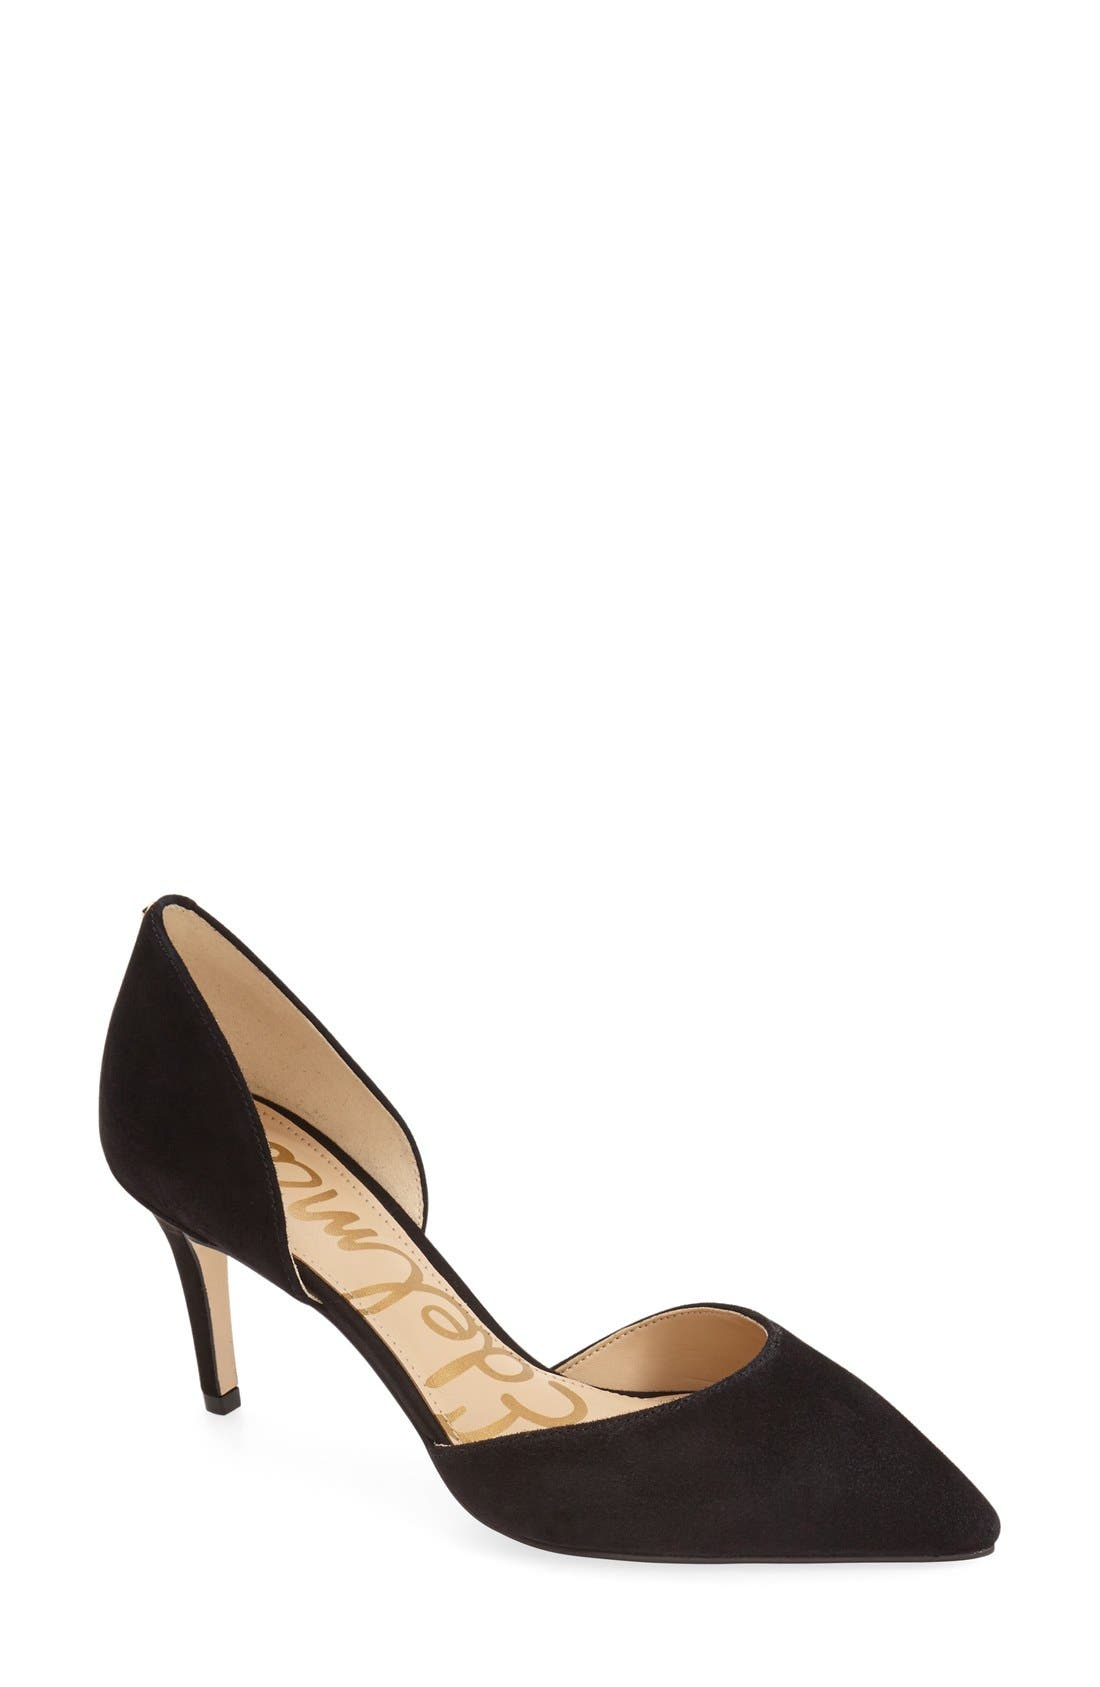 'Telsa' d'Orsay Pointy Toe Pump,                             Main thumbnail 4, color,